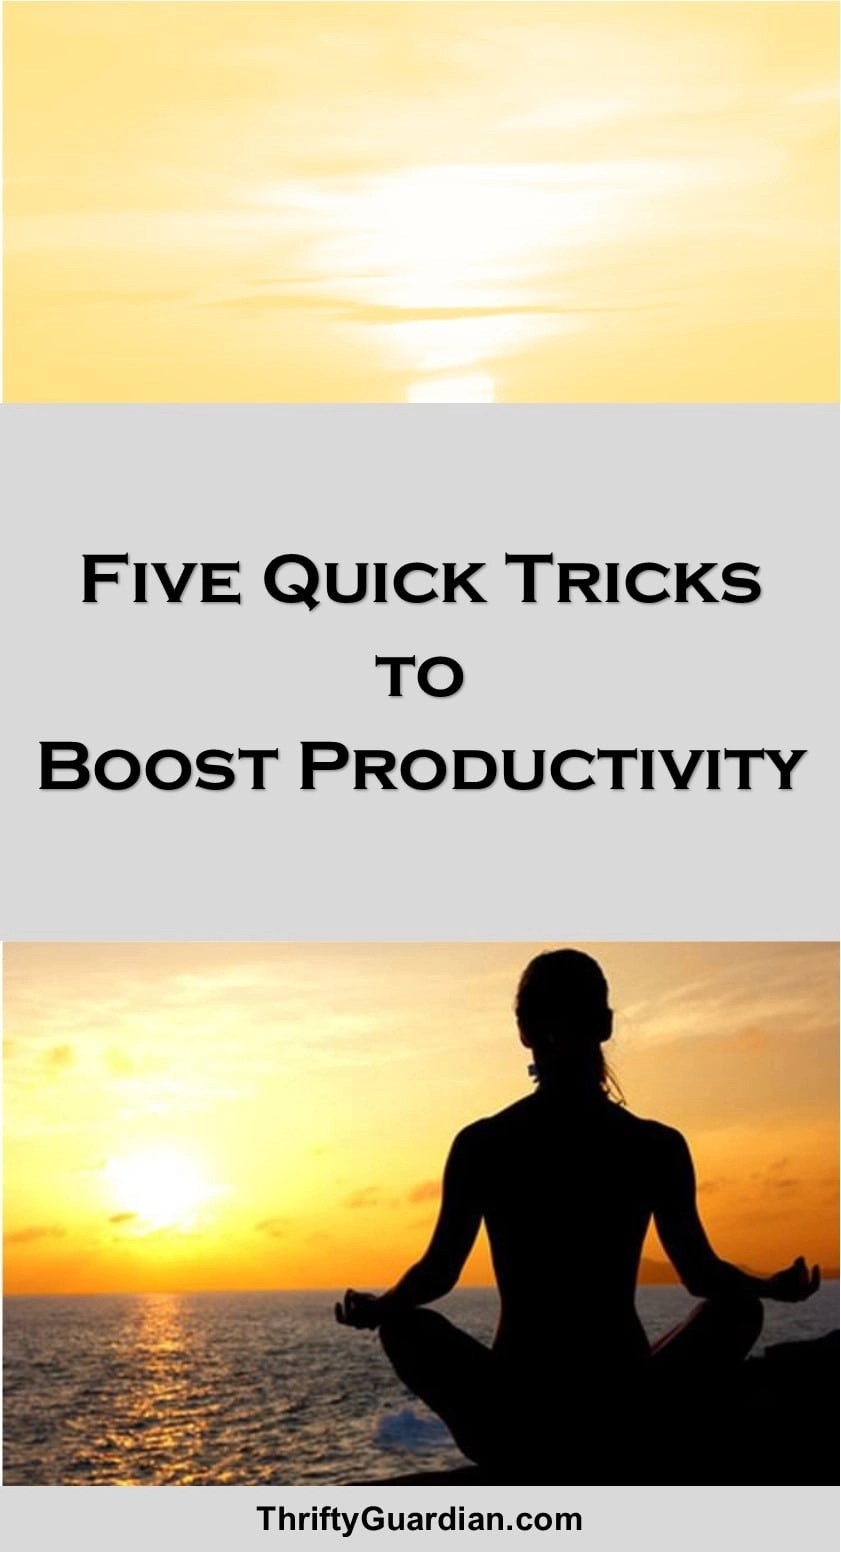 5 Minute Tricks to Boost Your Productivity